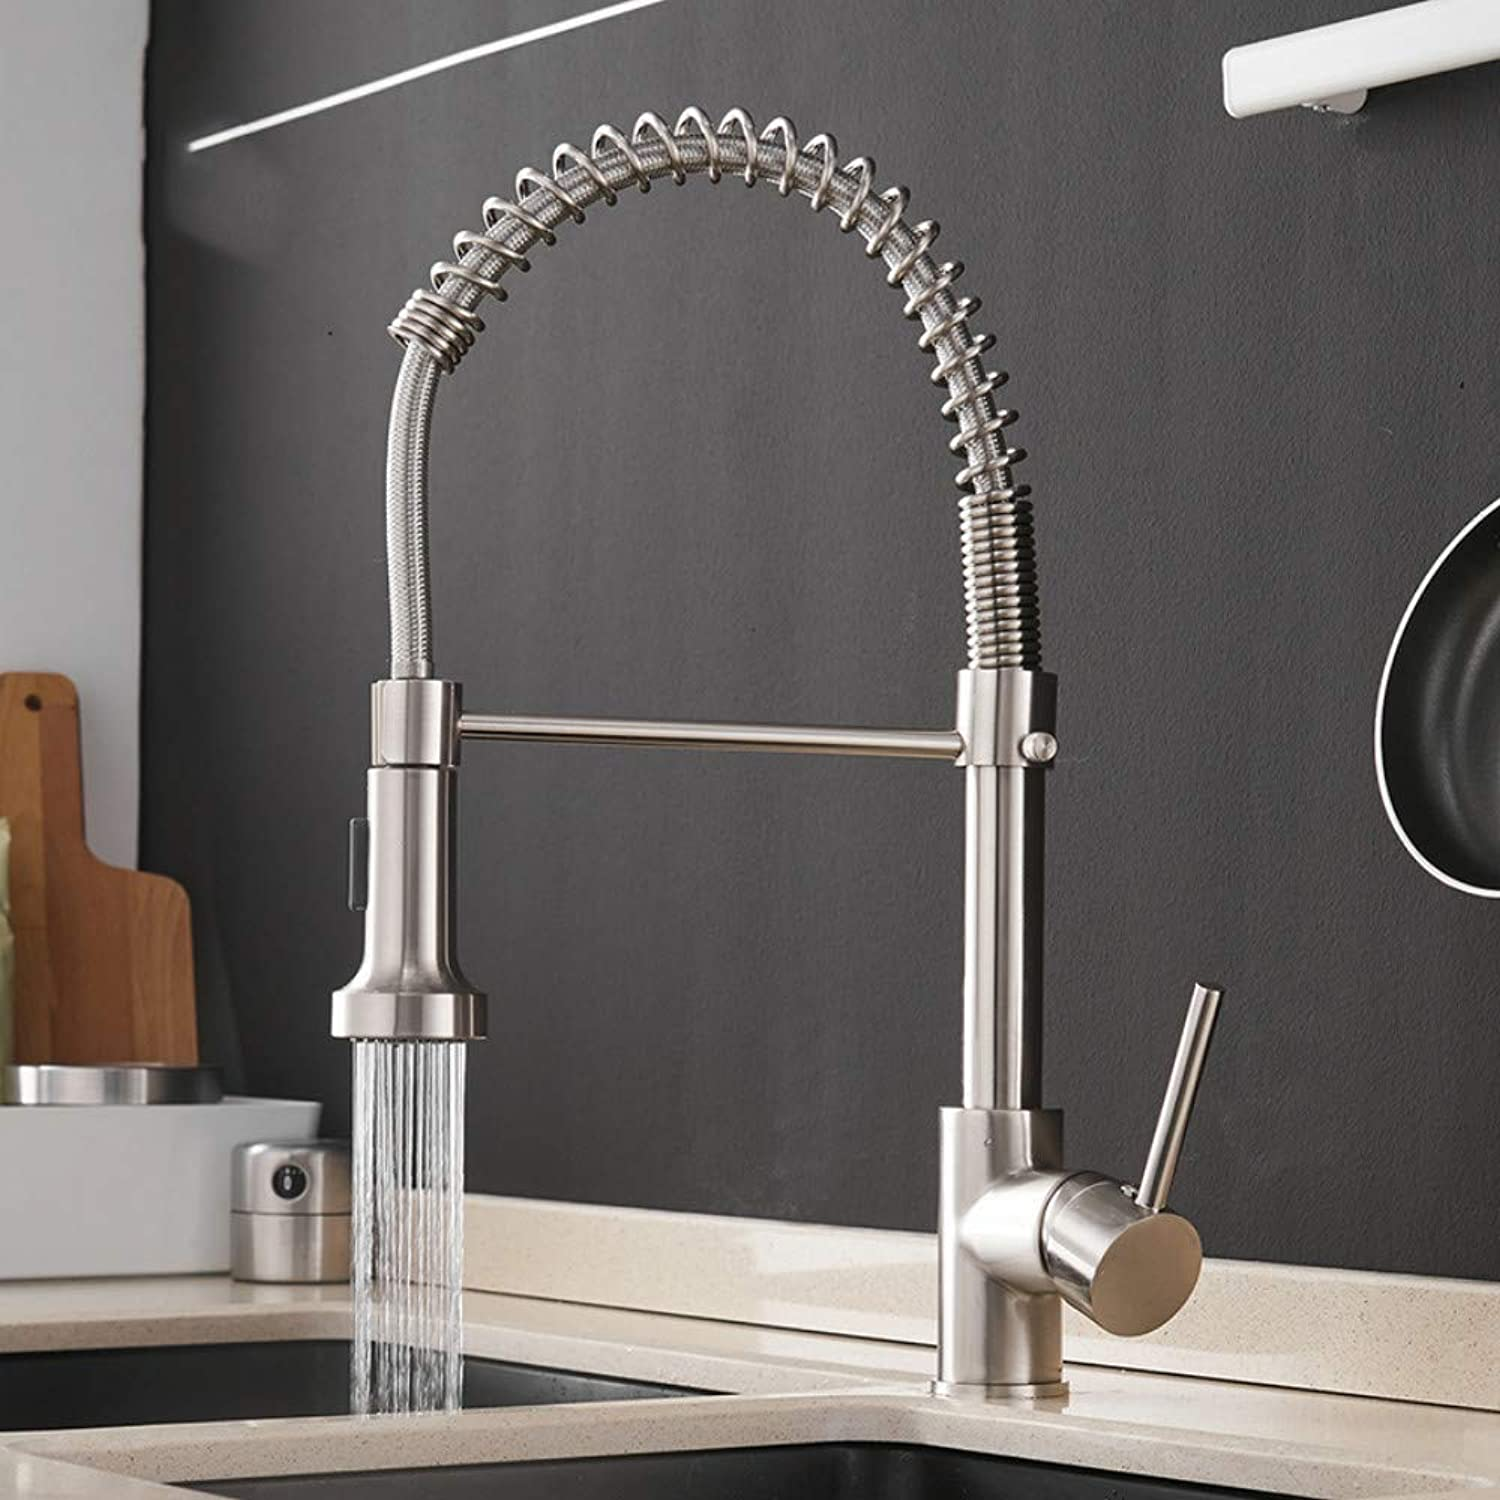 Ayhuir Kitchen Faucets Brush Brass Faucets for Kitchen Sink Single Lever Pull Out Spring Spout Mixers Tap Hot Cold Water Crane